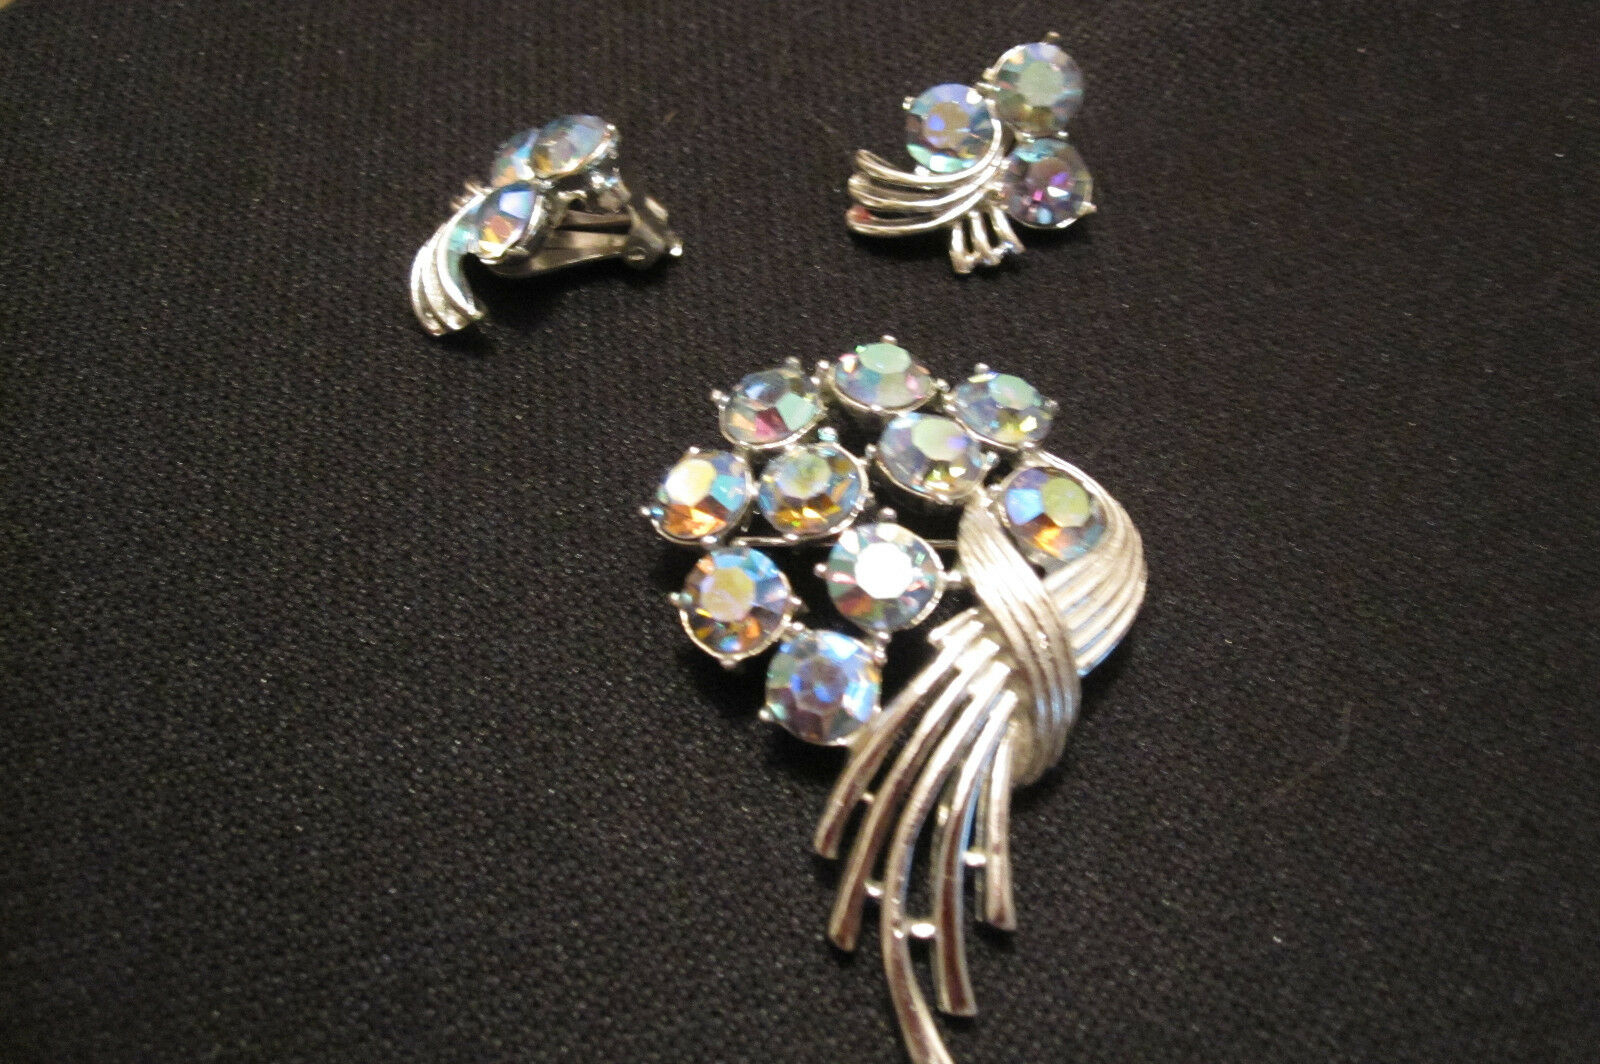 Vintage Kramer Brooch & Earrings - Beautiful Signed Kramer